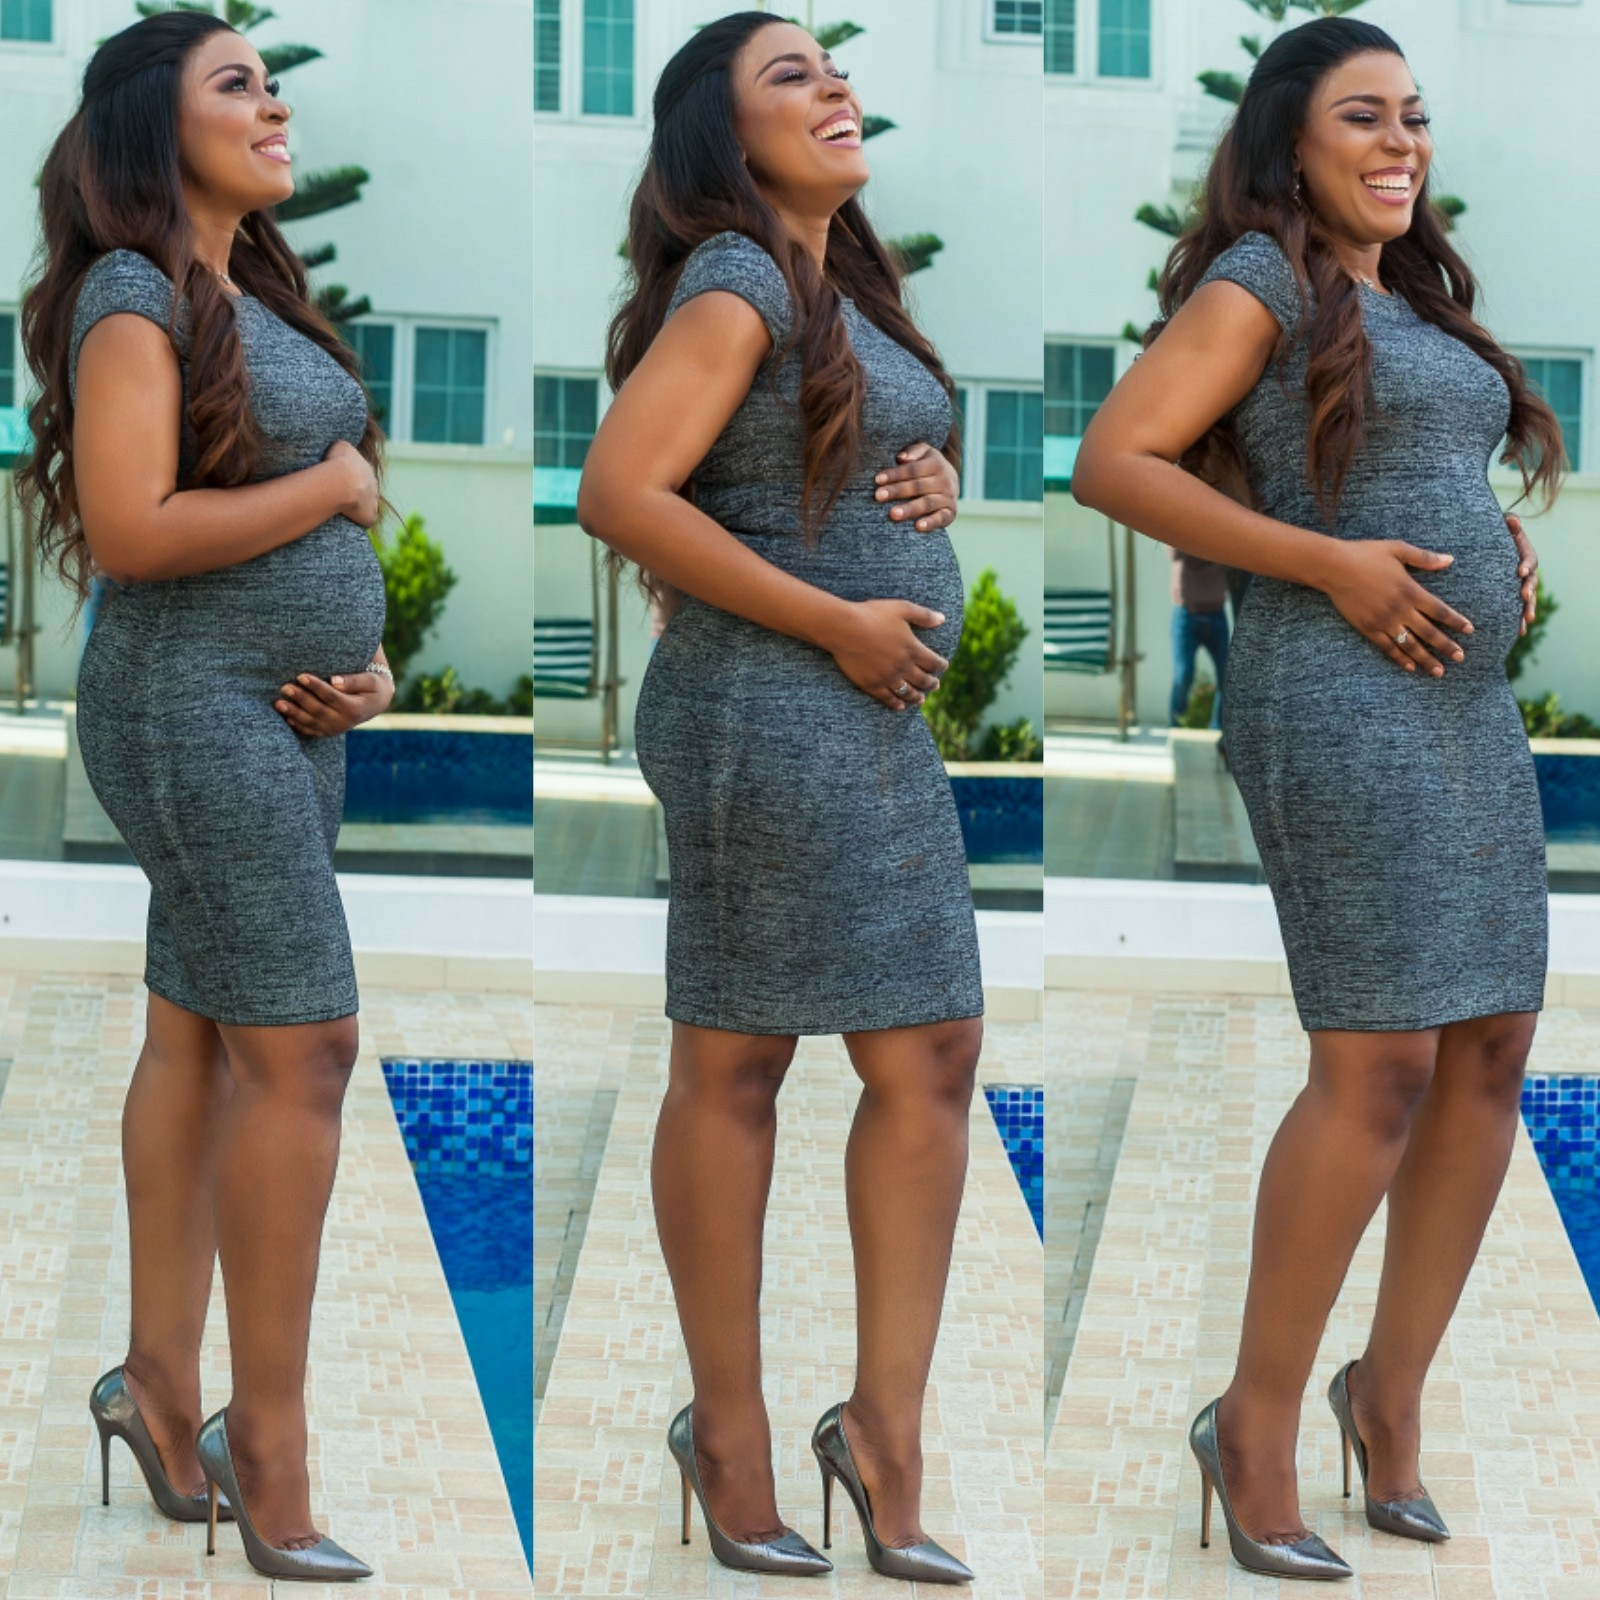 See Full Gist: Linda Ikeji is Pregnant, Share Baby Bump Photos